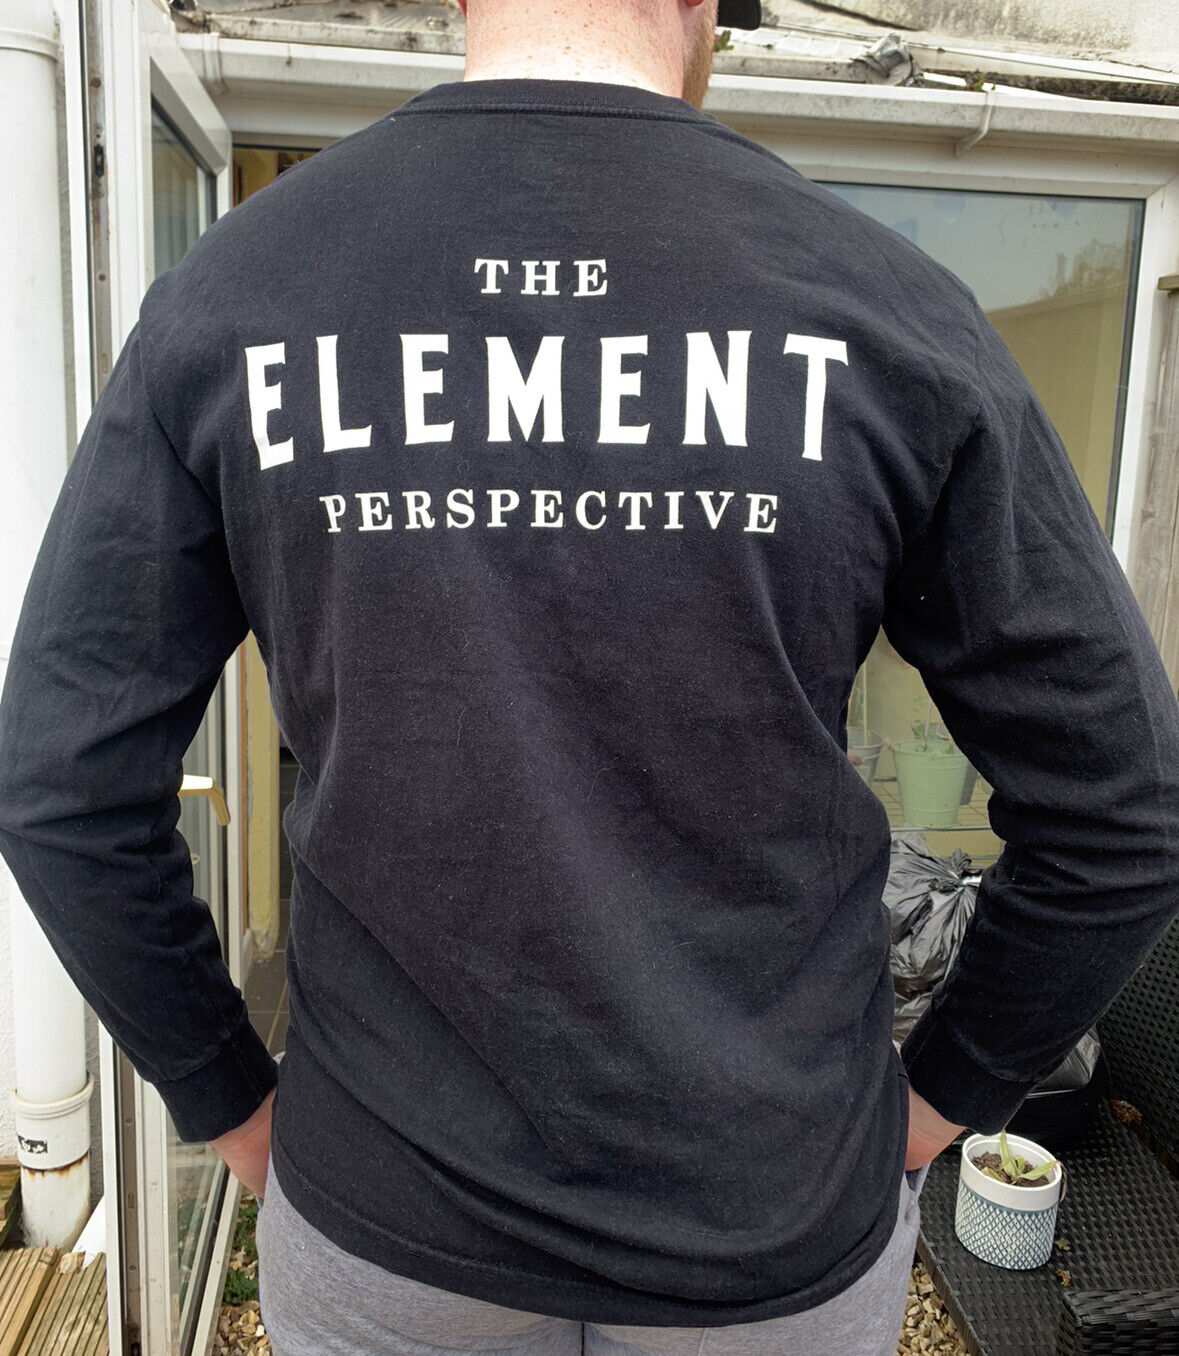 Black Element Sweatshirt jumper With Polaroid Graphic On The Front. Size Large